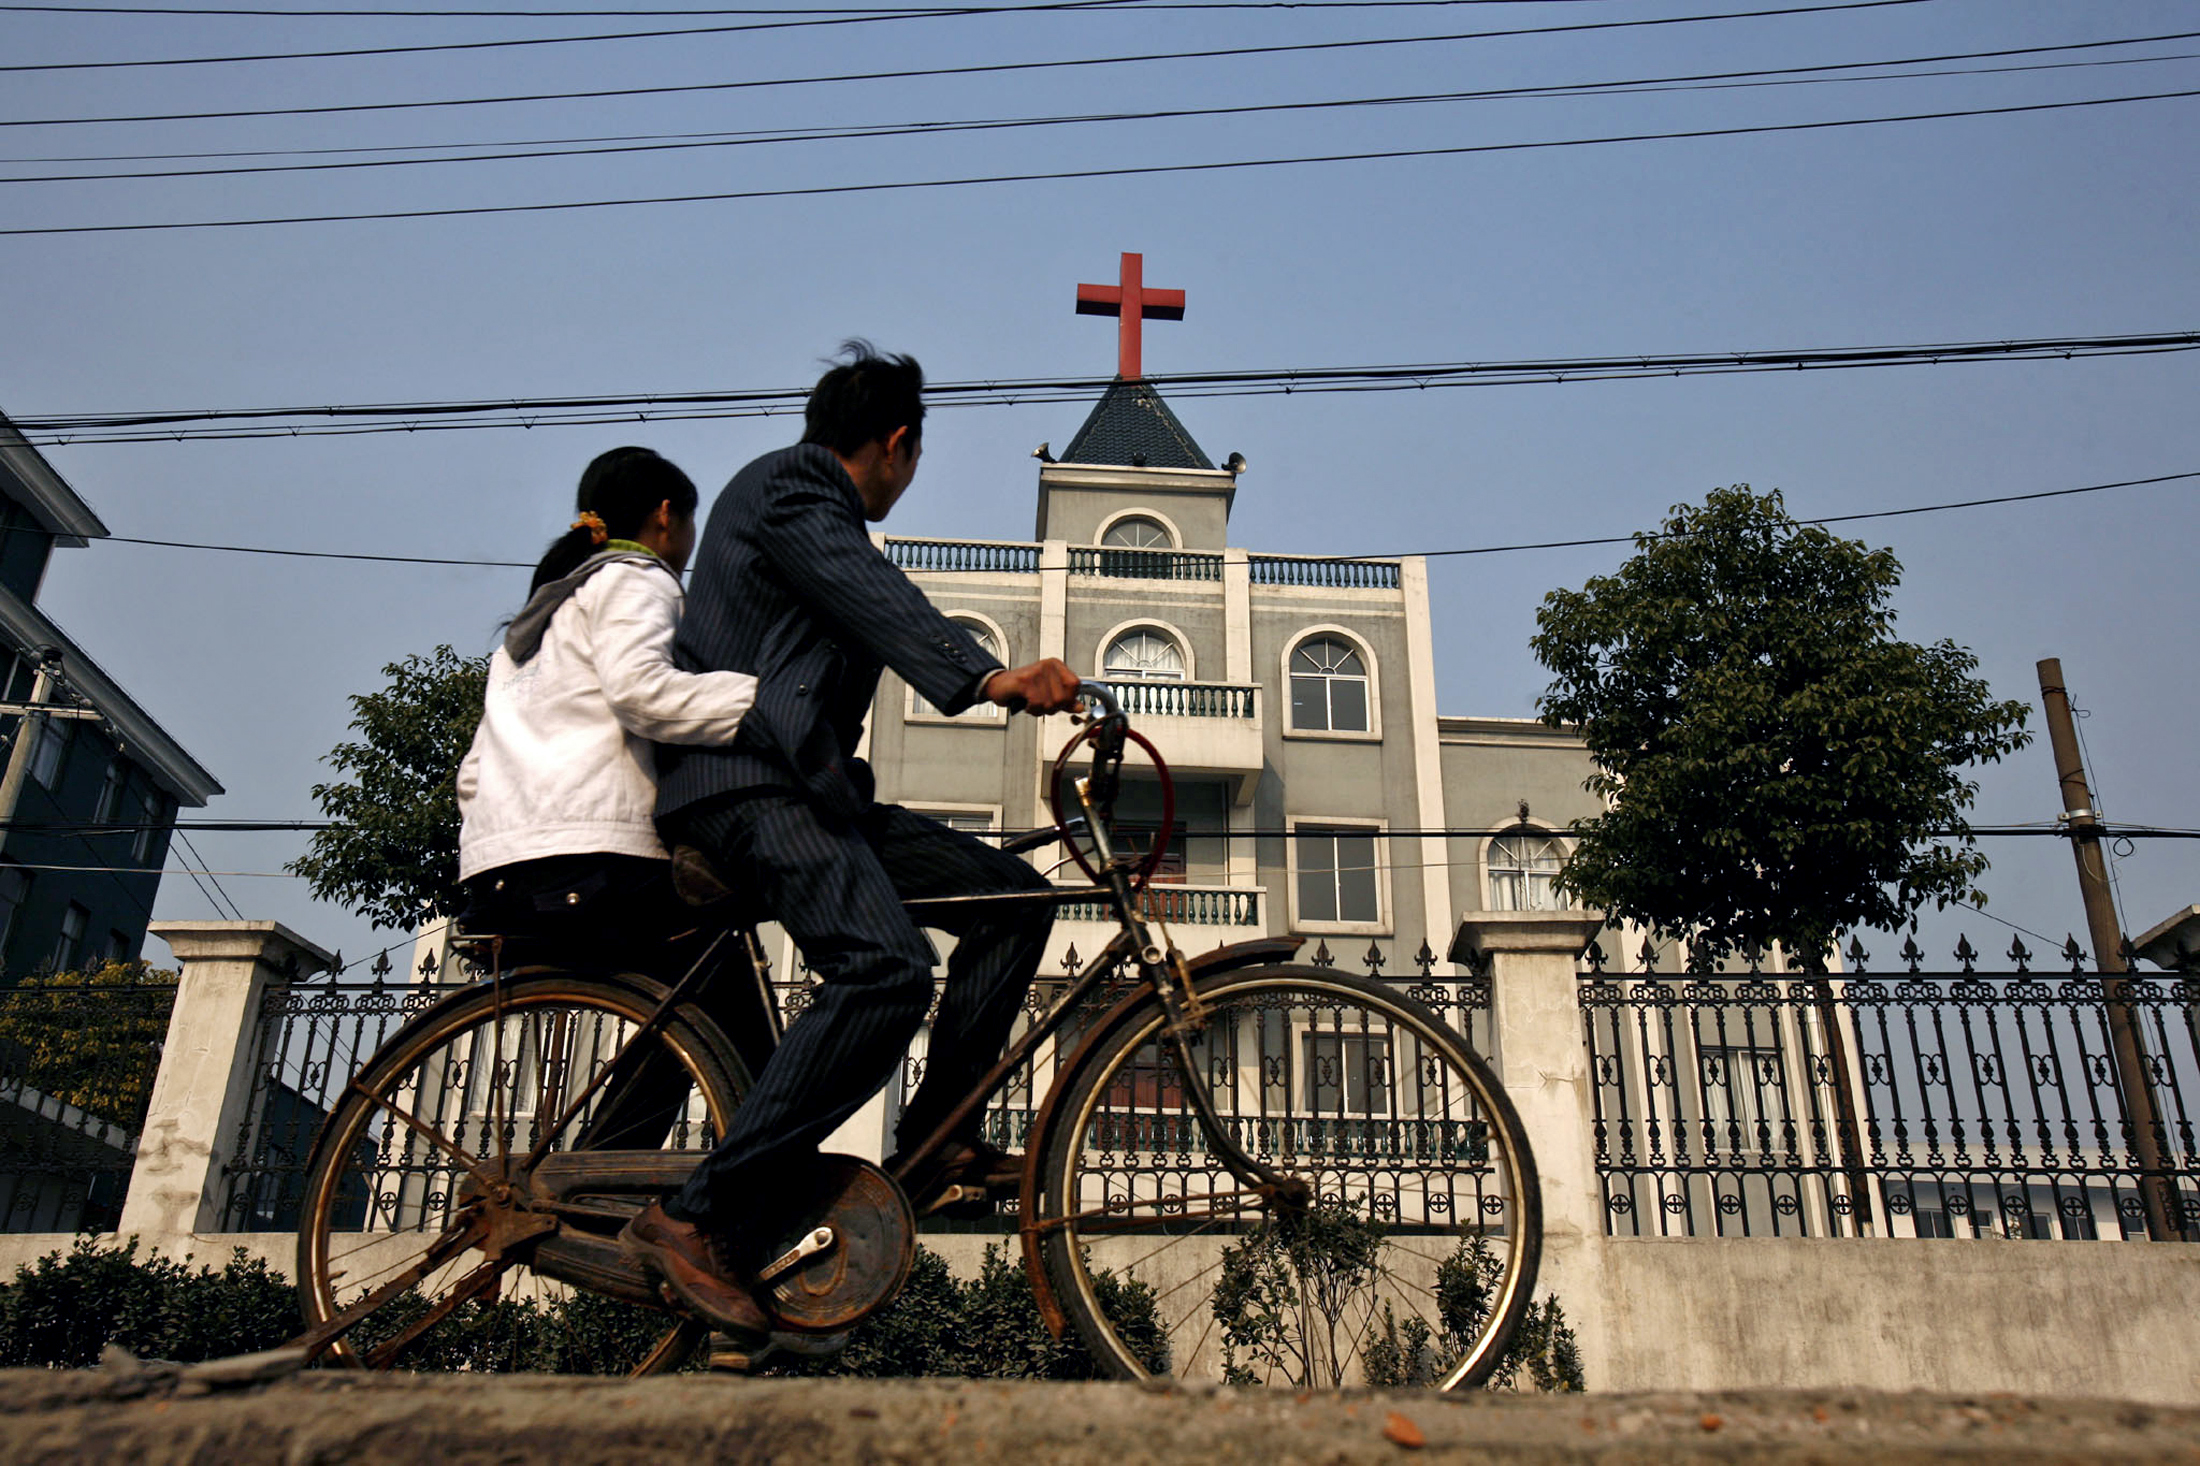 A local resident rides a bicycle past a church in Xiaoshan, a commercial suburb of Hangzhou, the capital of China's Zhejiang province, on Dec. 21, 2006